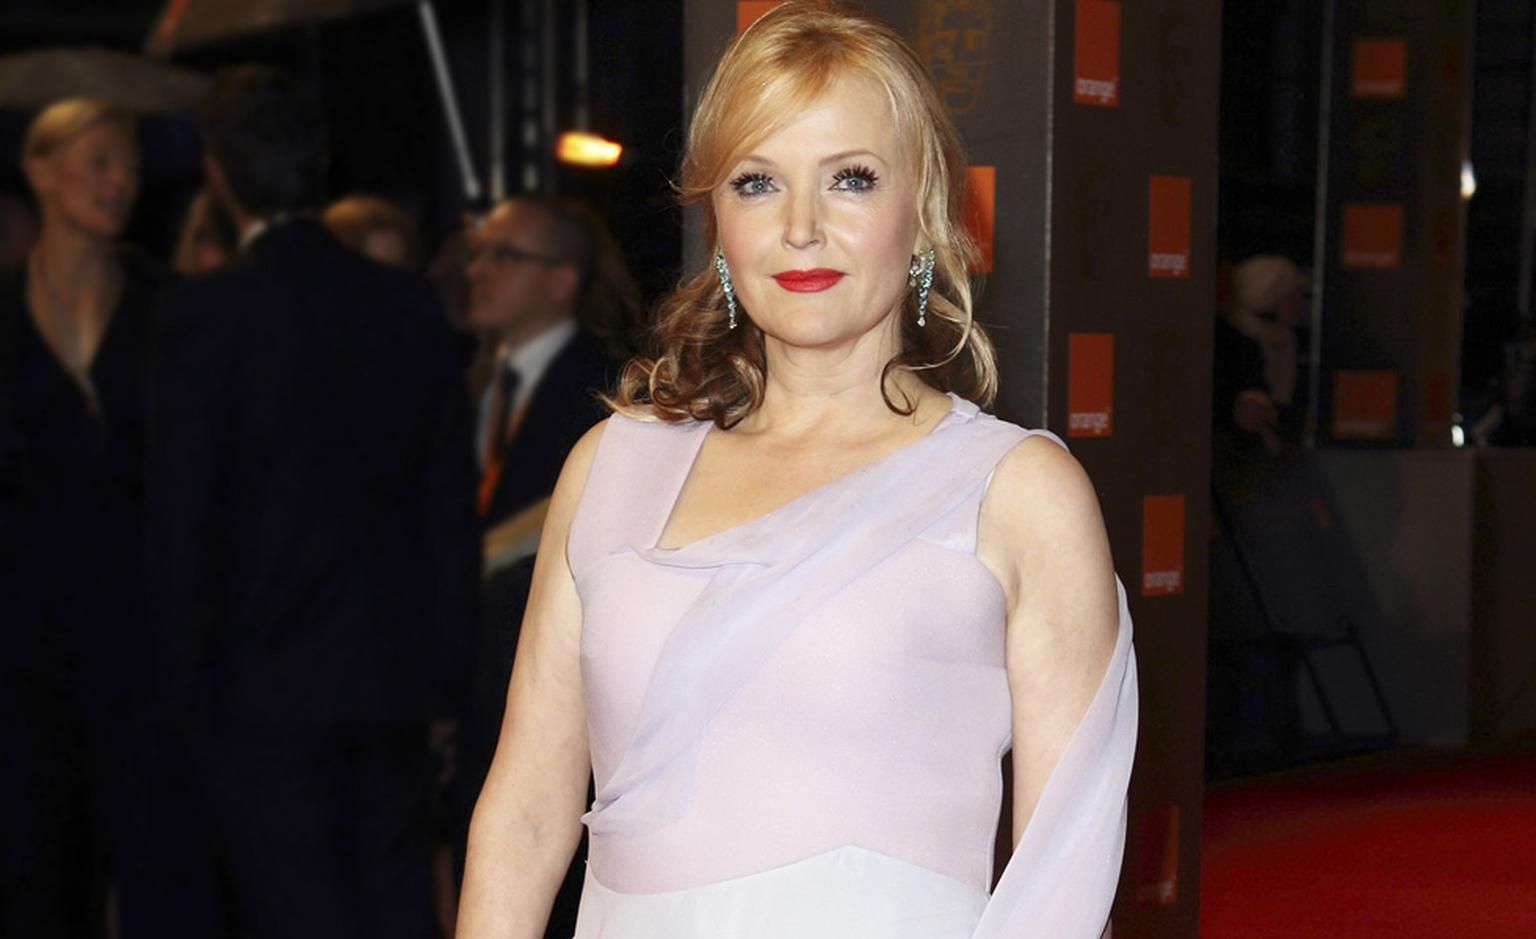 Miranda Richardson wearing Van Cleef & Arpels earrings and bracelet to BAFTAS 2011 Photo by Mike Marsland GettyImages